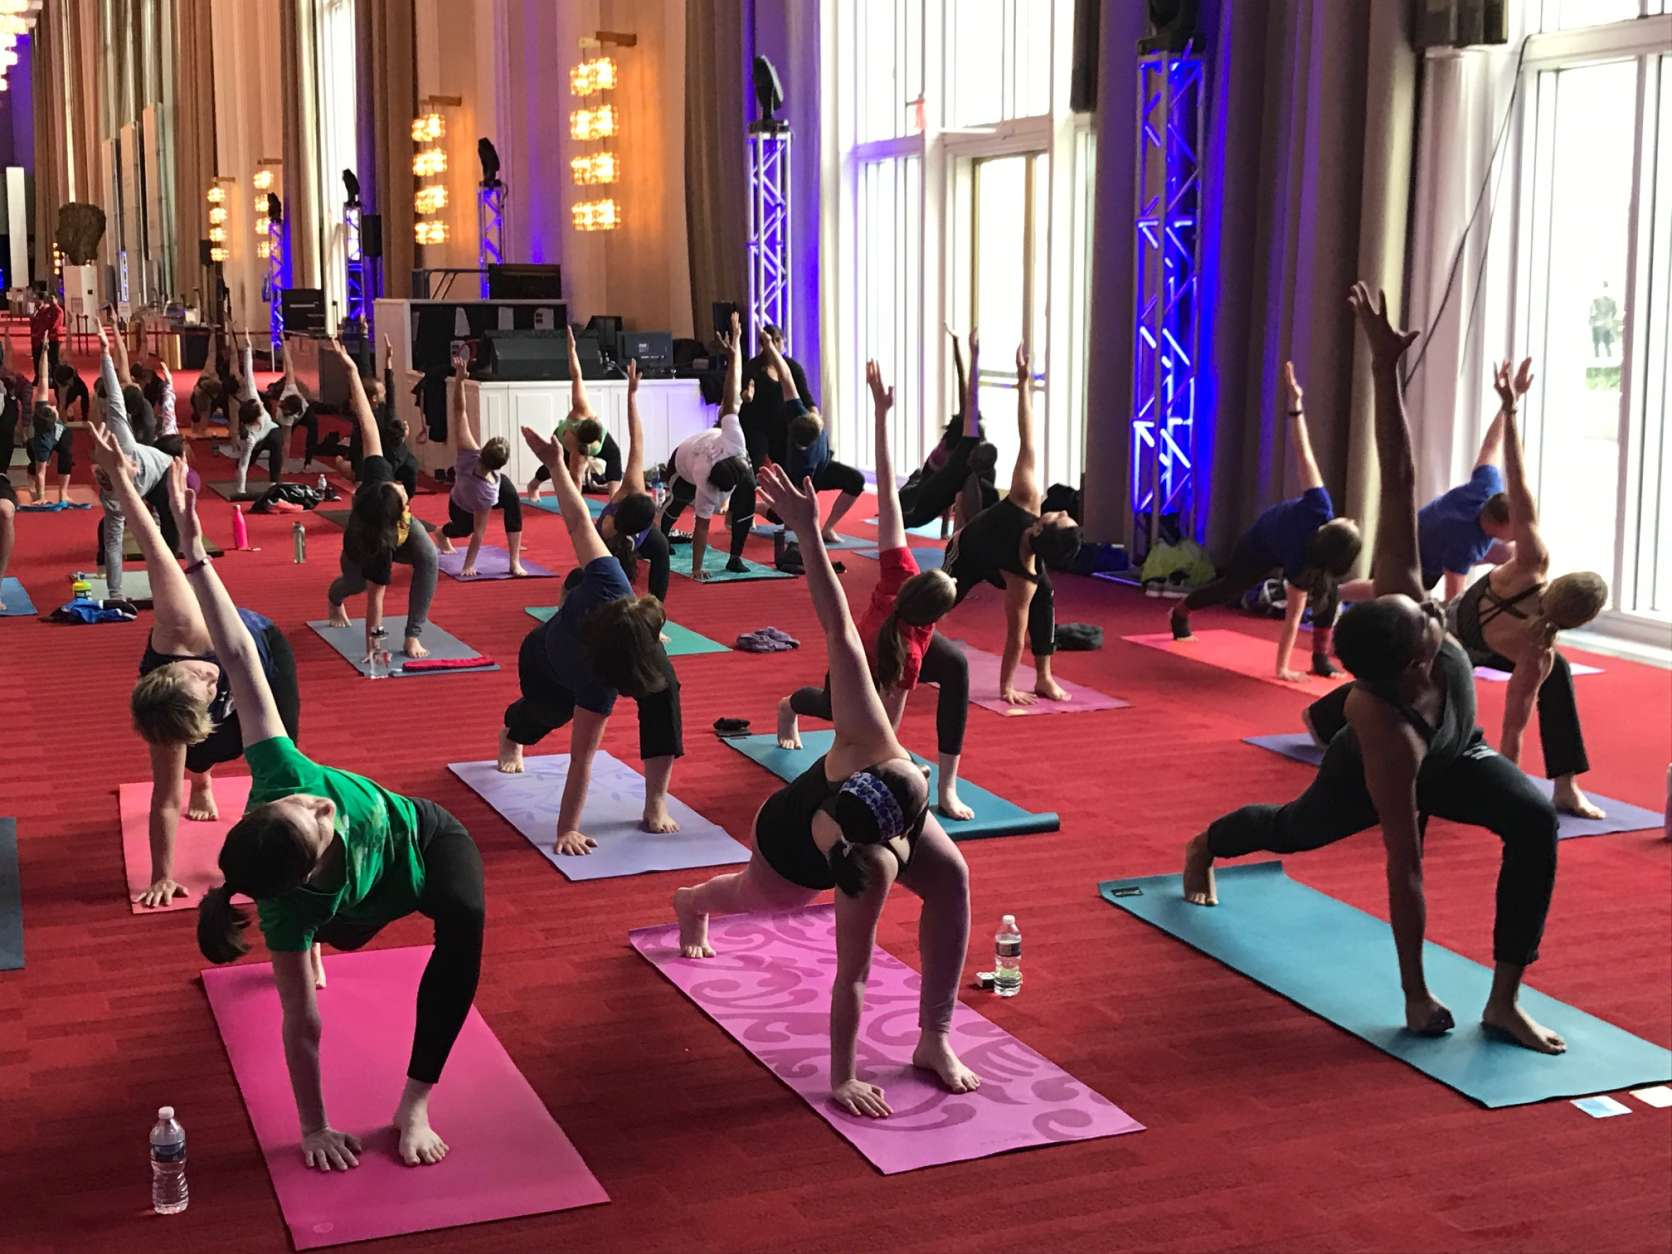 The Kennedy Center is hosting free yoga classes through Aug. 19 every other Saturday in the iconic Grand Foyer. (WTOP/Rachel Nania)